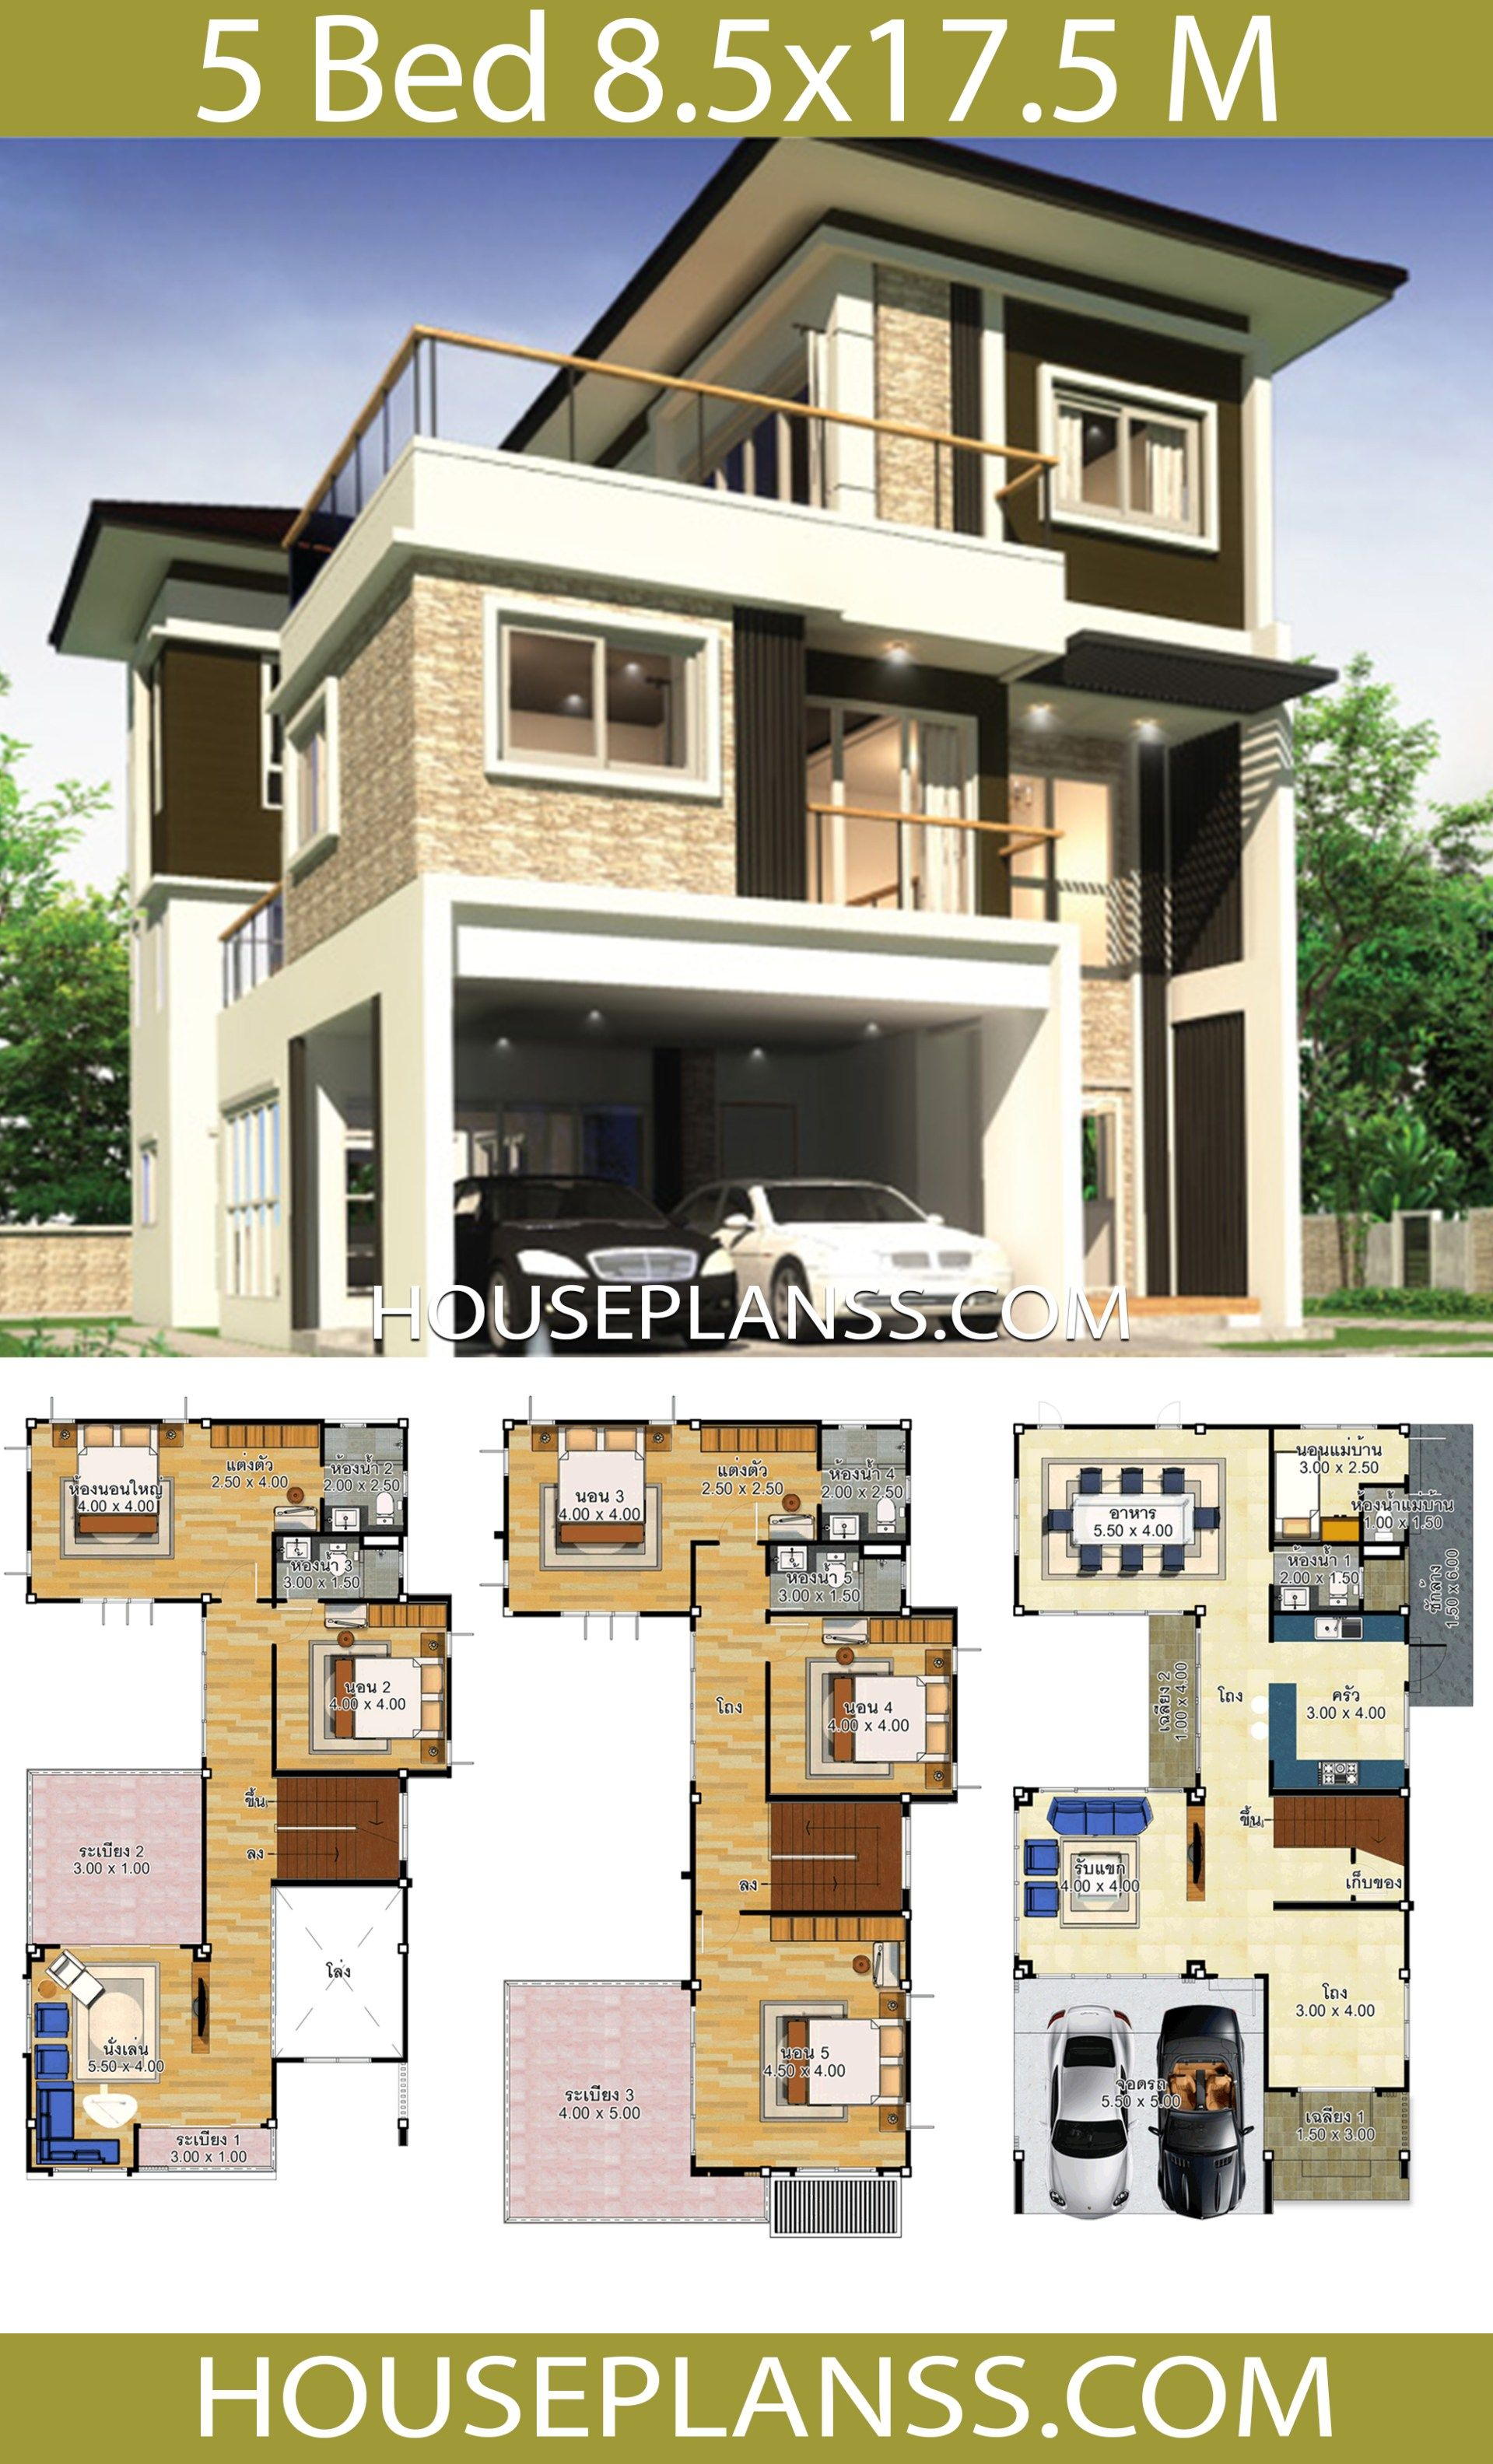 House Design Idea 8 5x17 5 With 5 Bedrooms House Plans S Two Story House Design Contemporary House Plans 3d House Plans